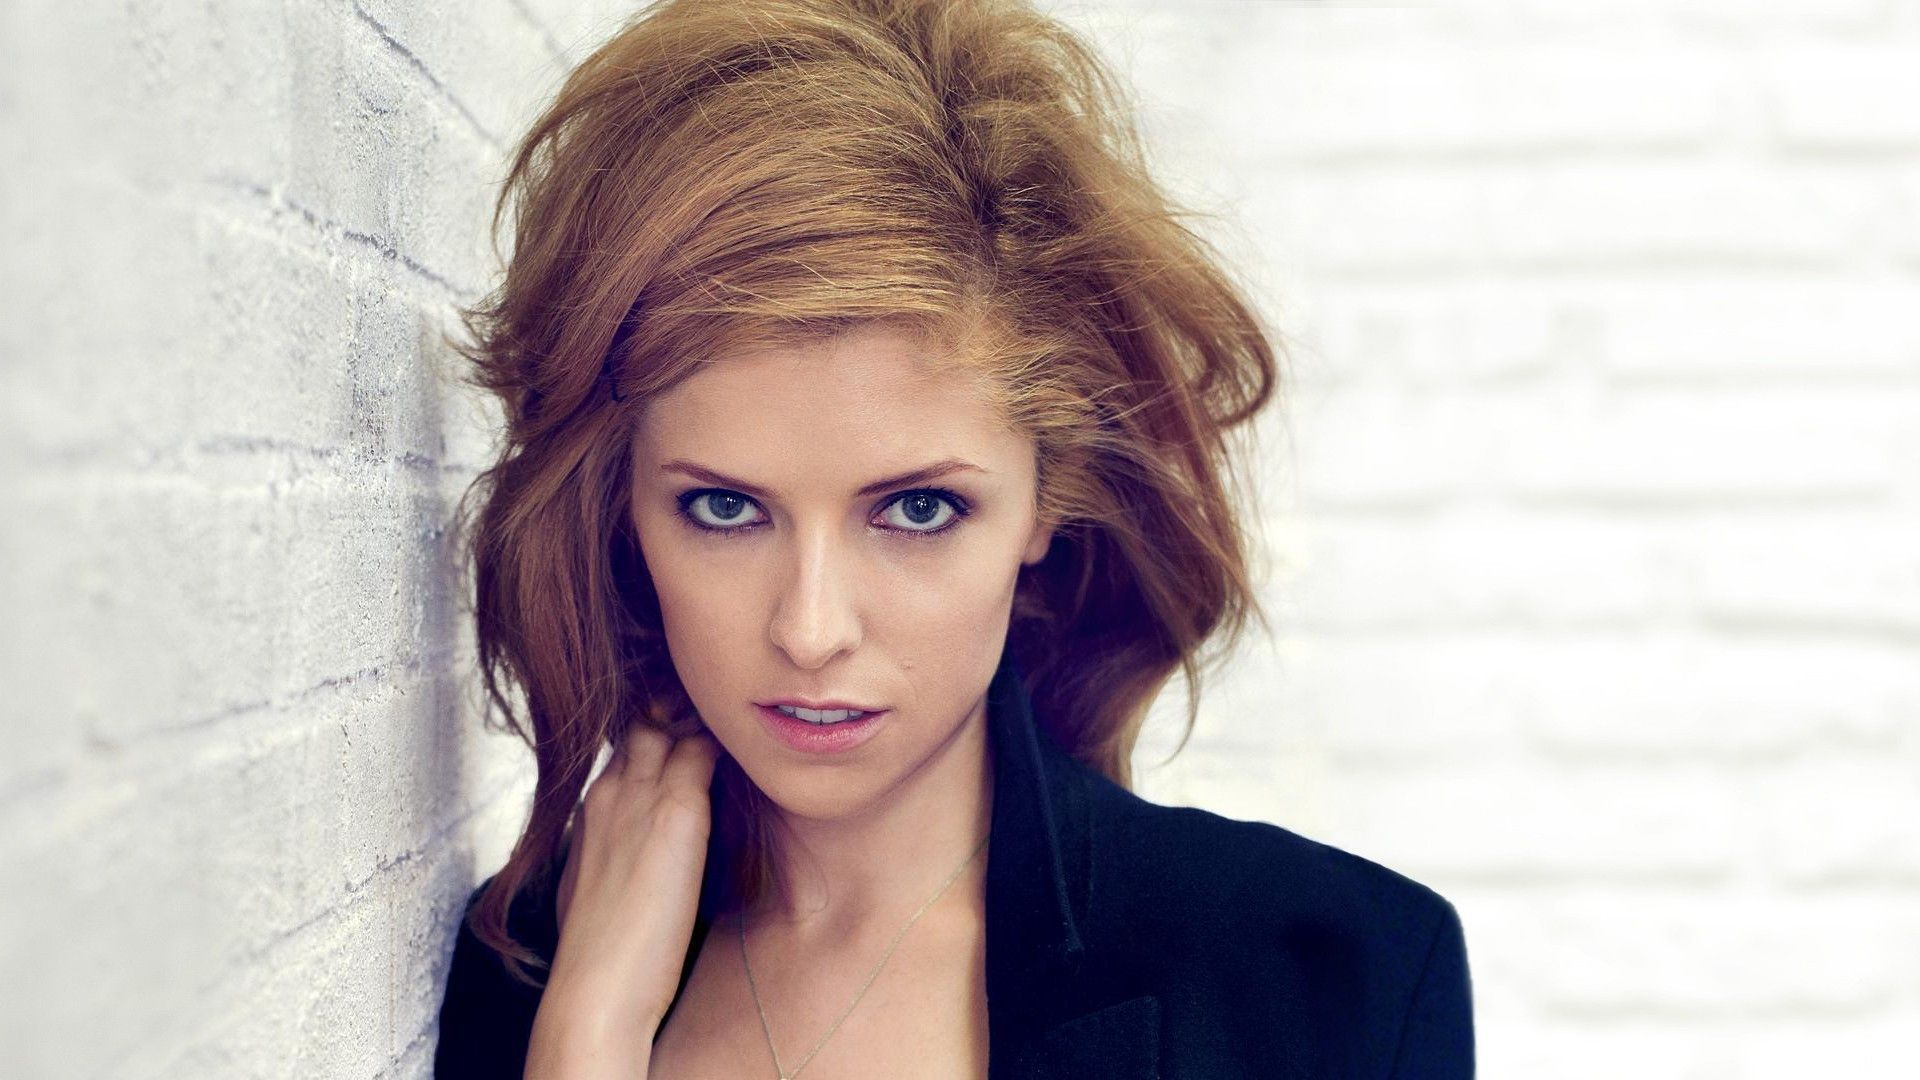 Anna-Kendrick-HD-HD-Pop-1920%C3%971080-Anna-Kendrick-wallpaper-wp3602608